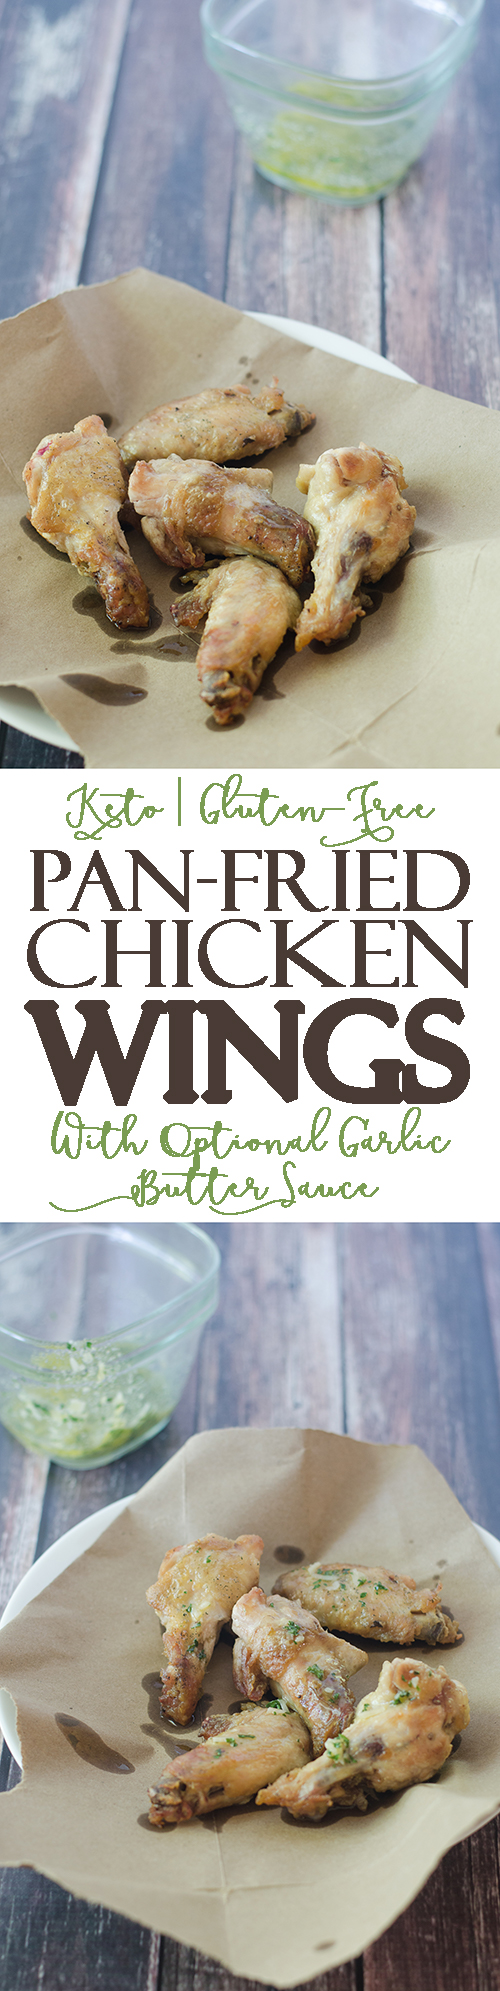 In the mood for some chicken wings but don't have an oven? Or are you looking for a healthier fried chicken recipe in which you can control the type of oil used? Then these pan-fried chicken wings are for you! Gluten-free, grain-free, low-carb, keto.